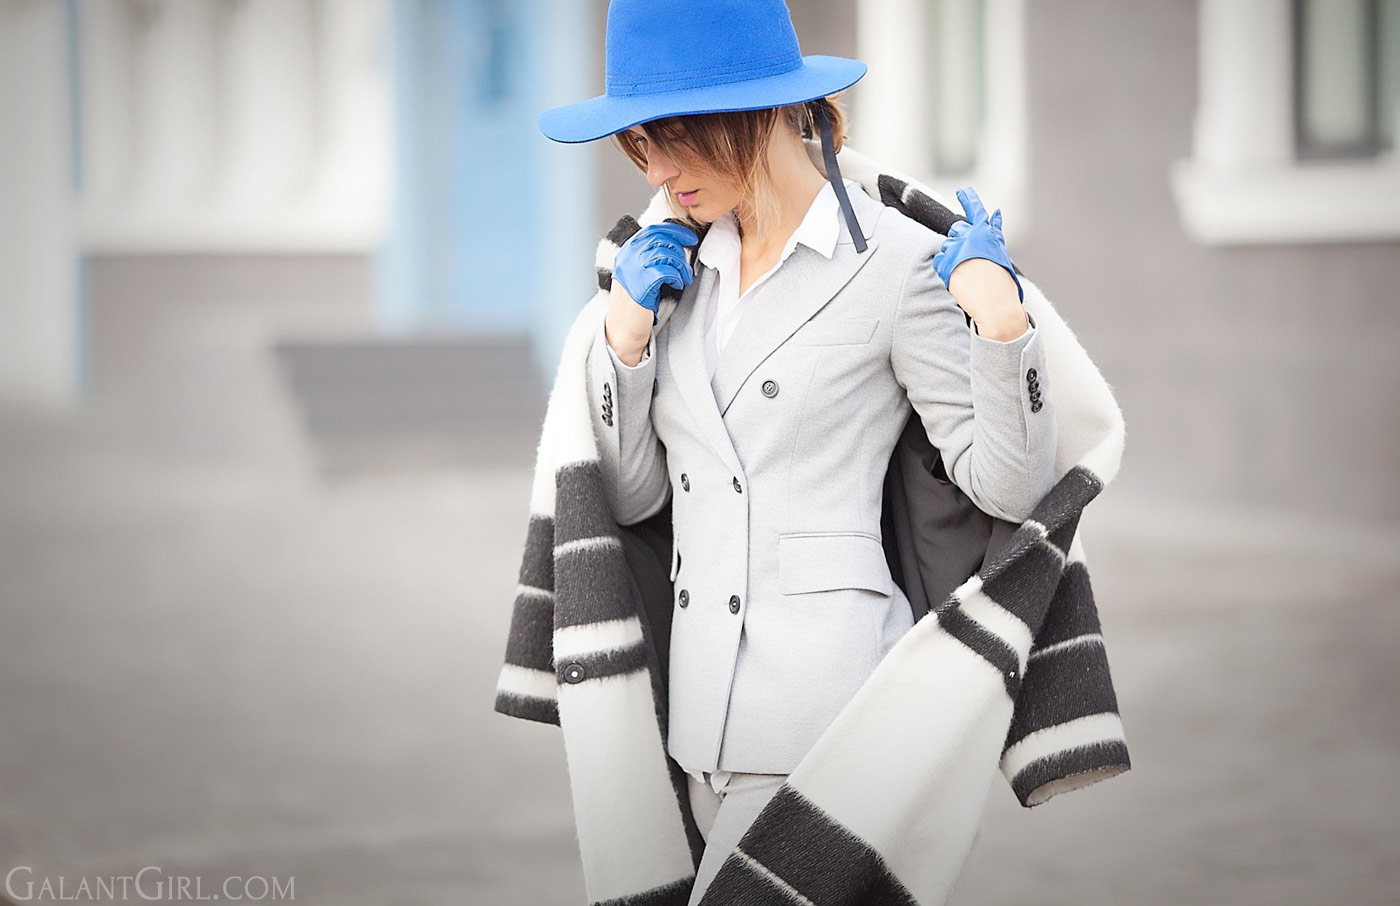 blue-felt-hat-and-grey-suit-fashion-blogger-galant-girl